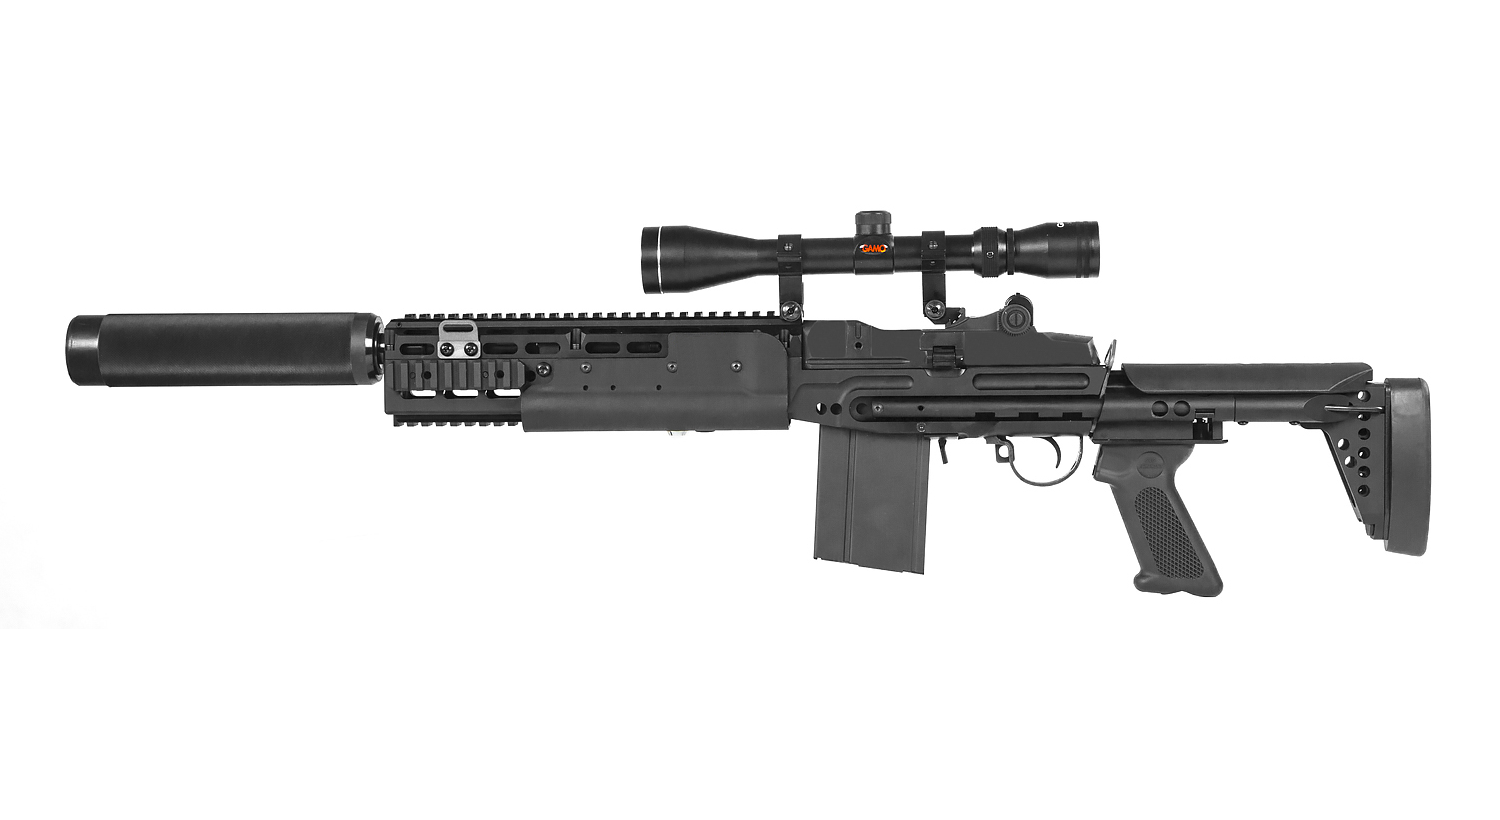 m-14 sniper rifle for military laser tag games